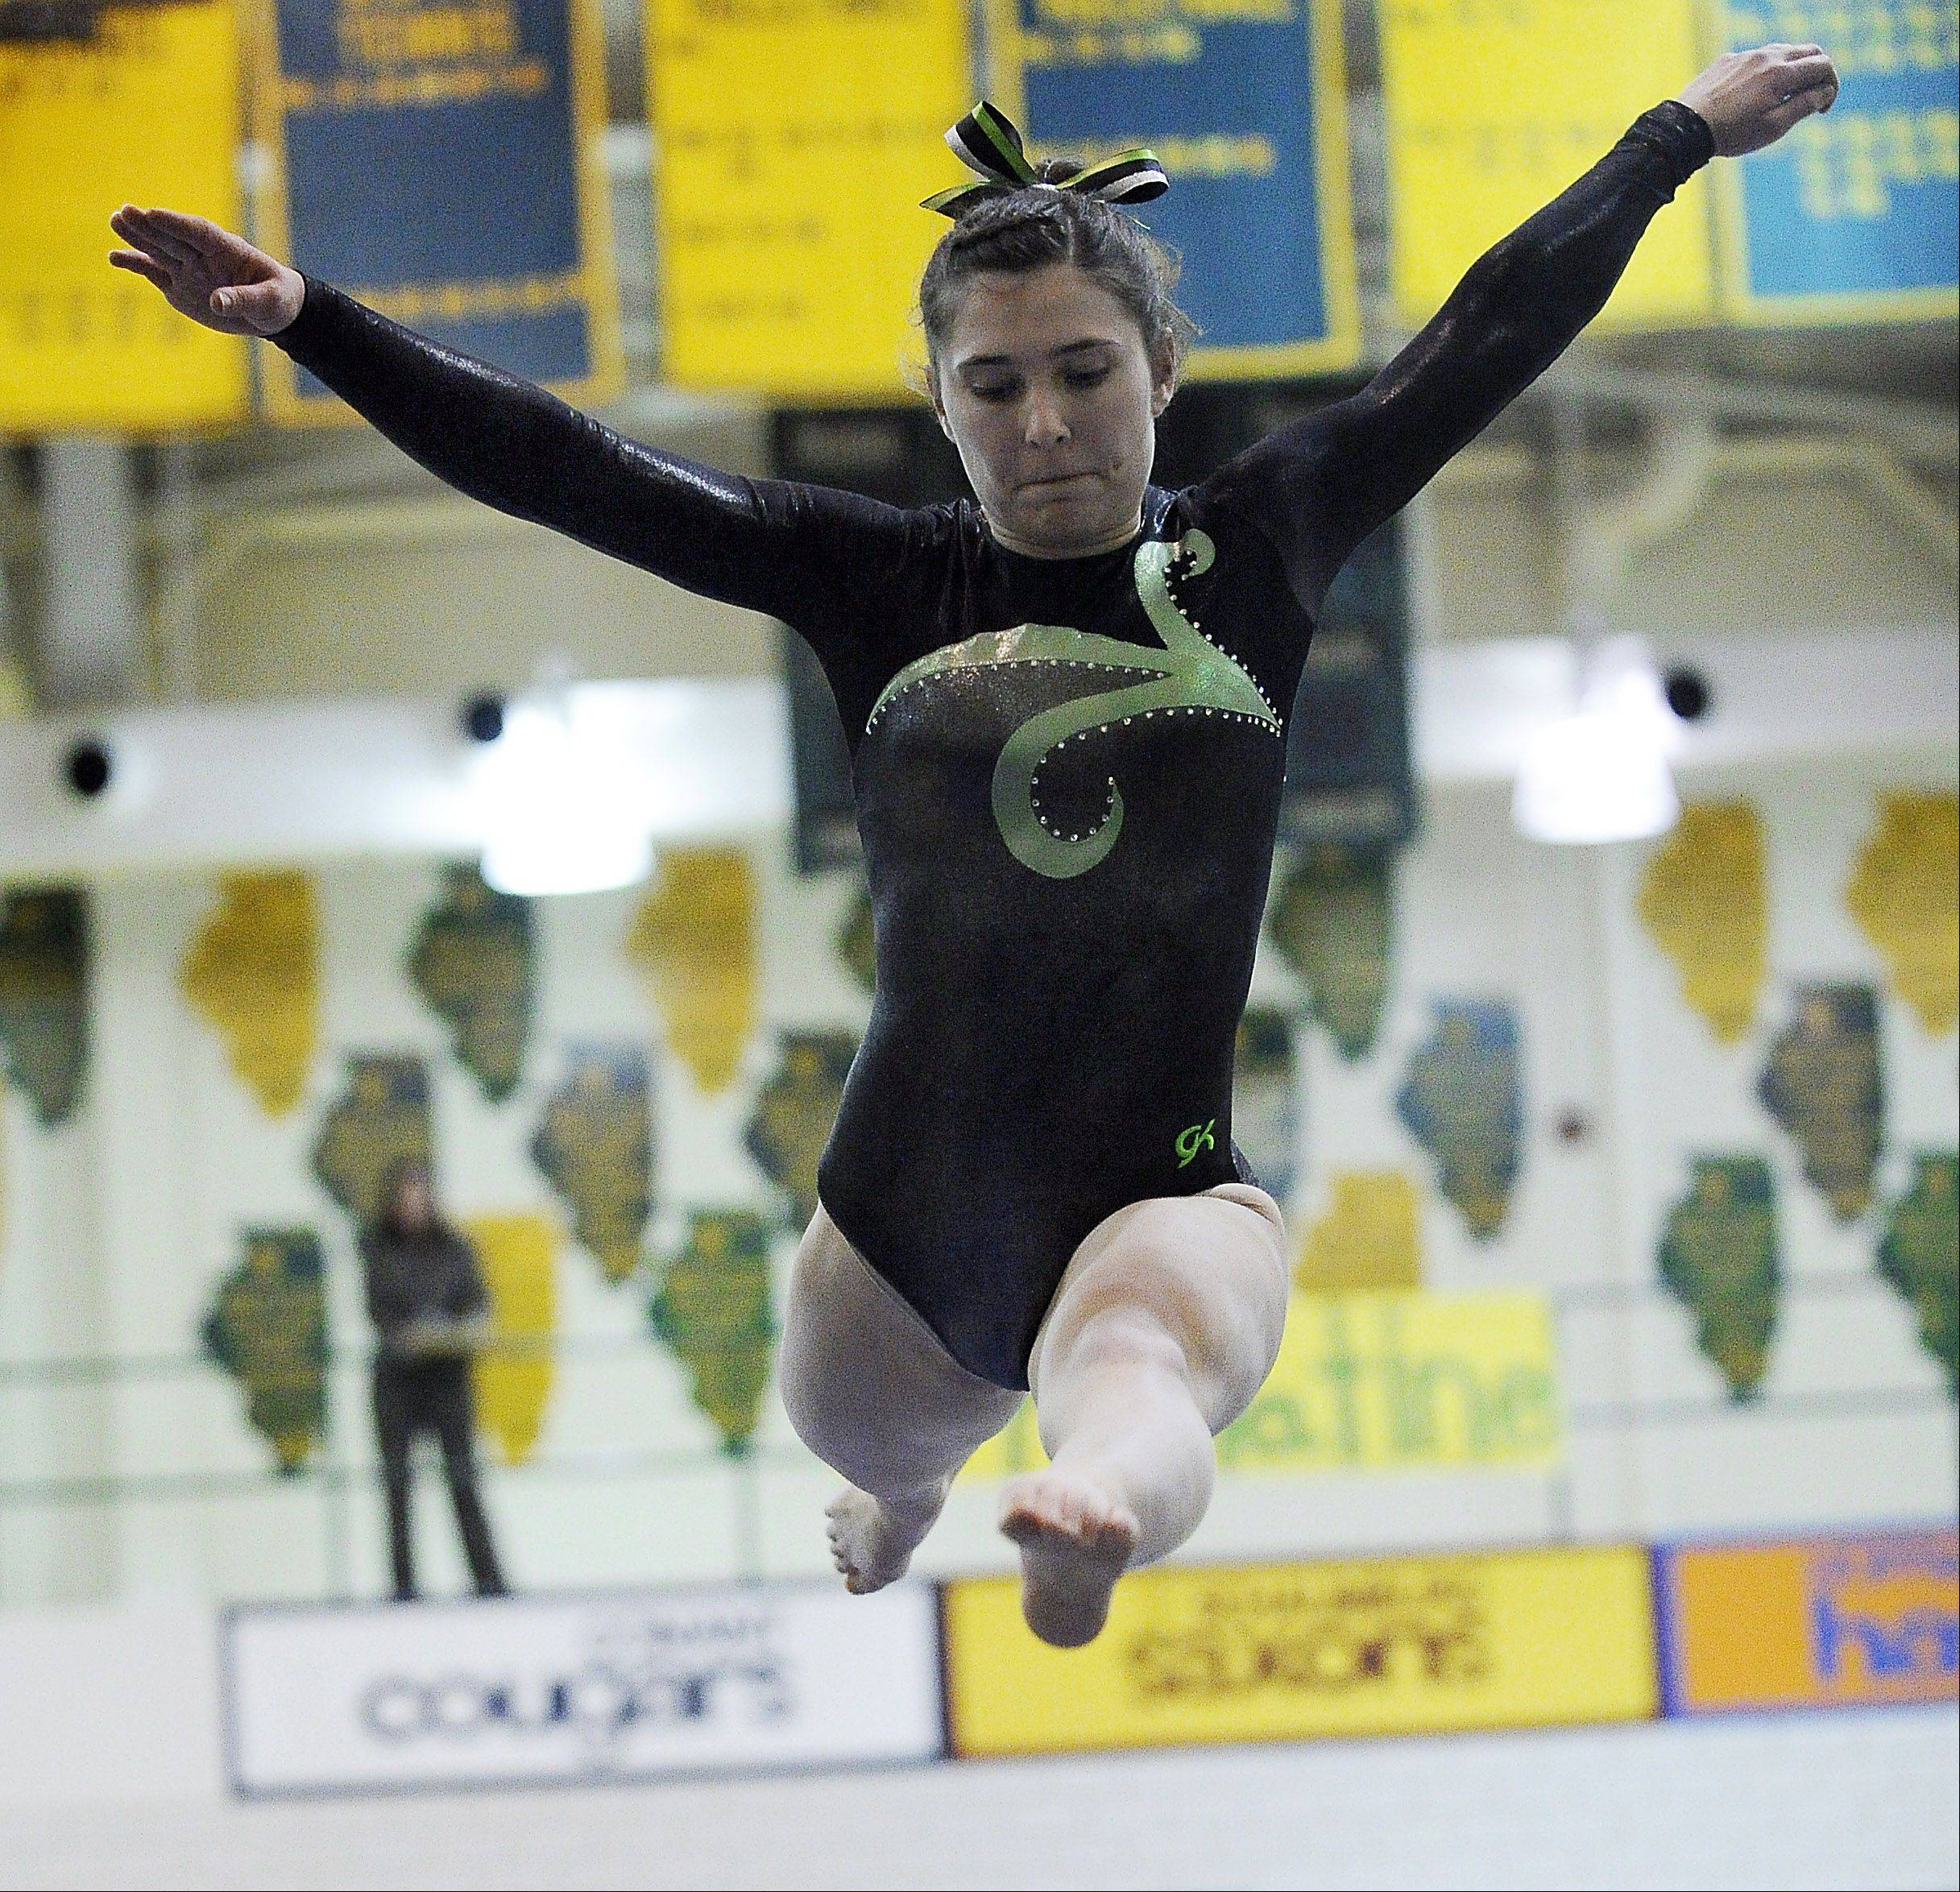 Elk Grove's Amelia Rafferty eyes the beam for her landing spot during sectional action last week at Fremd.